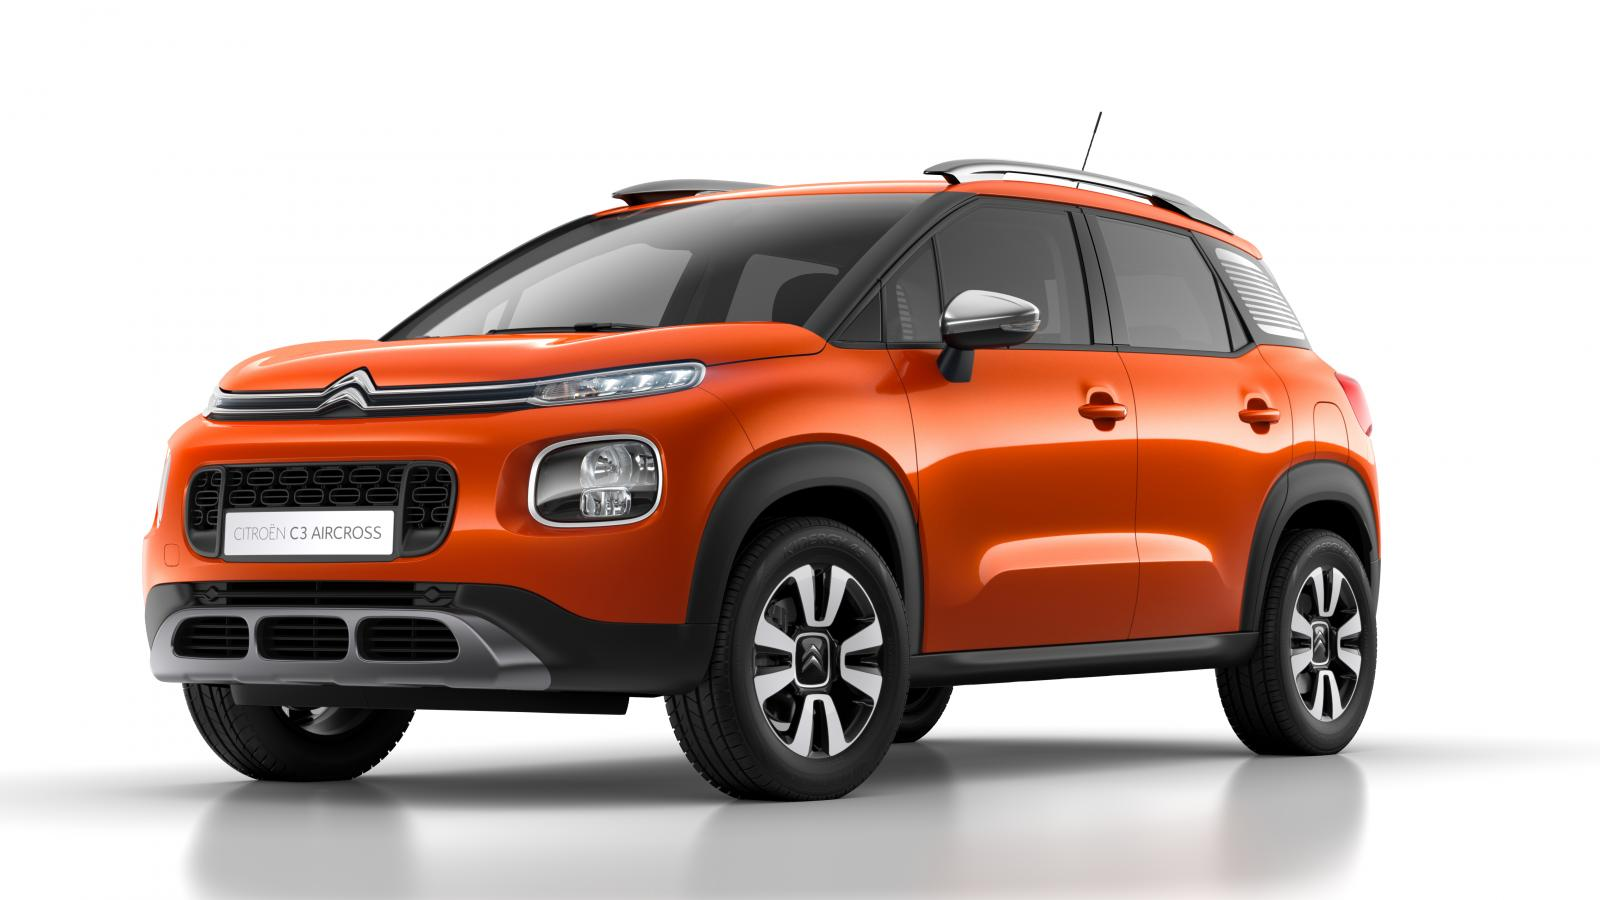 Compact SUV C3 Aircross - Power Orange